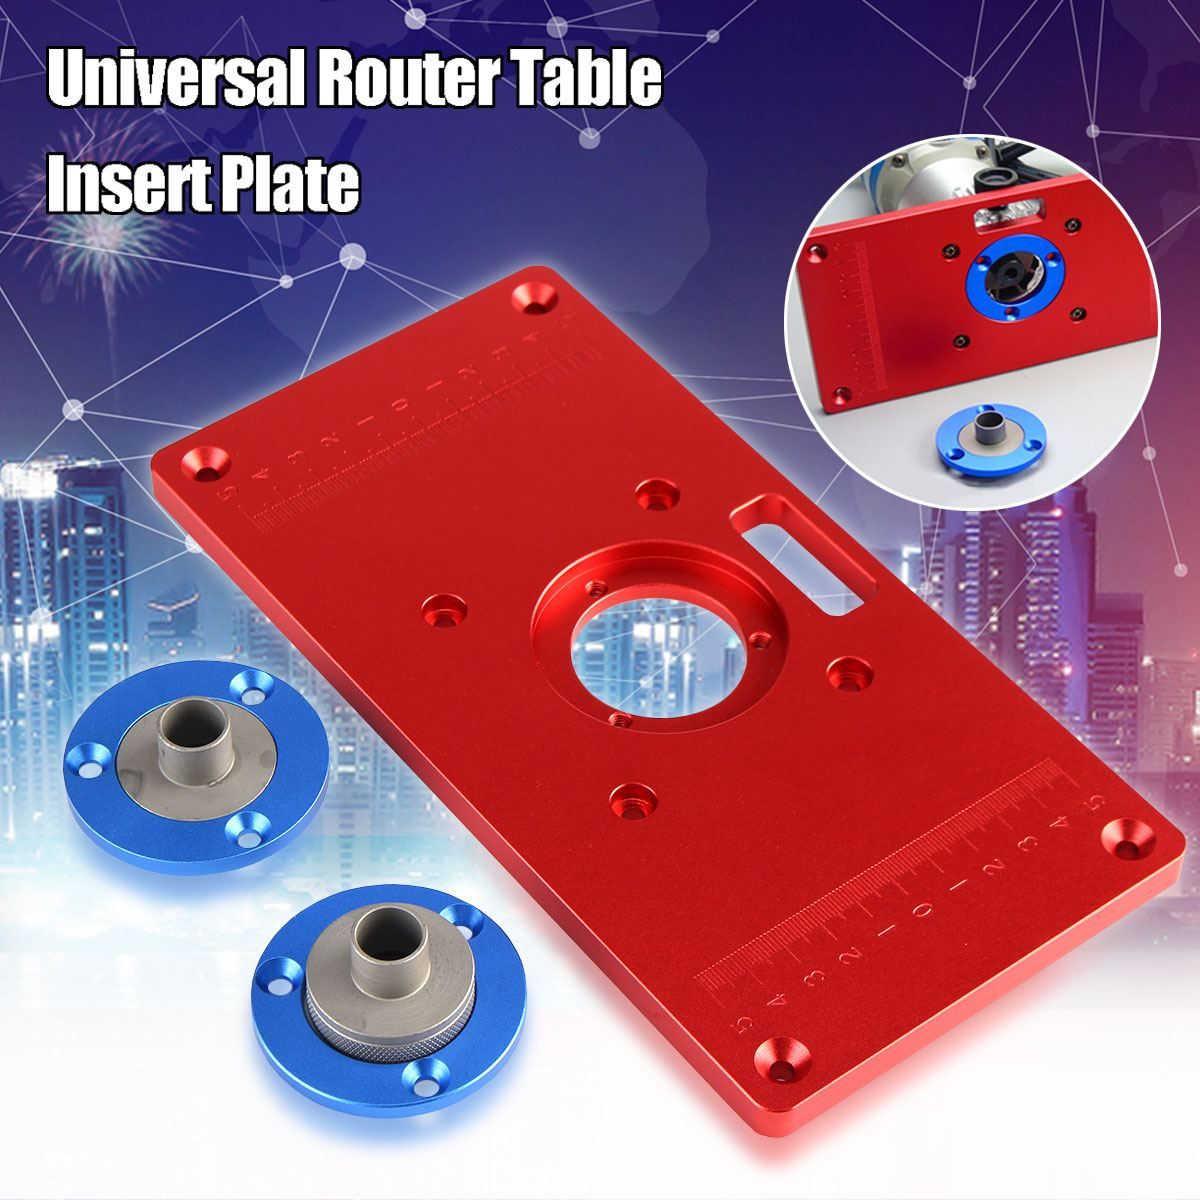 Multifunctional aluminum router table plate w 4 router insert rings high quality universal router table insert plate for diy woodworking wood router trimmer models engraving machine greentooth Choice Image